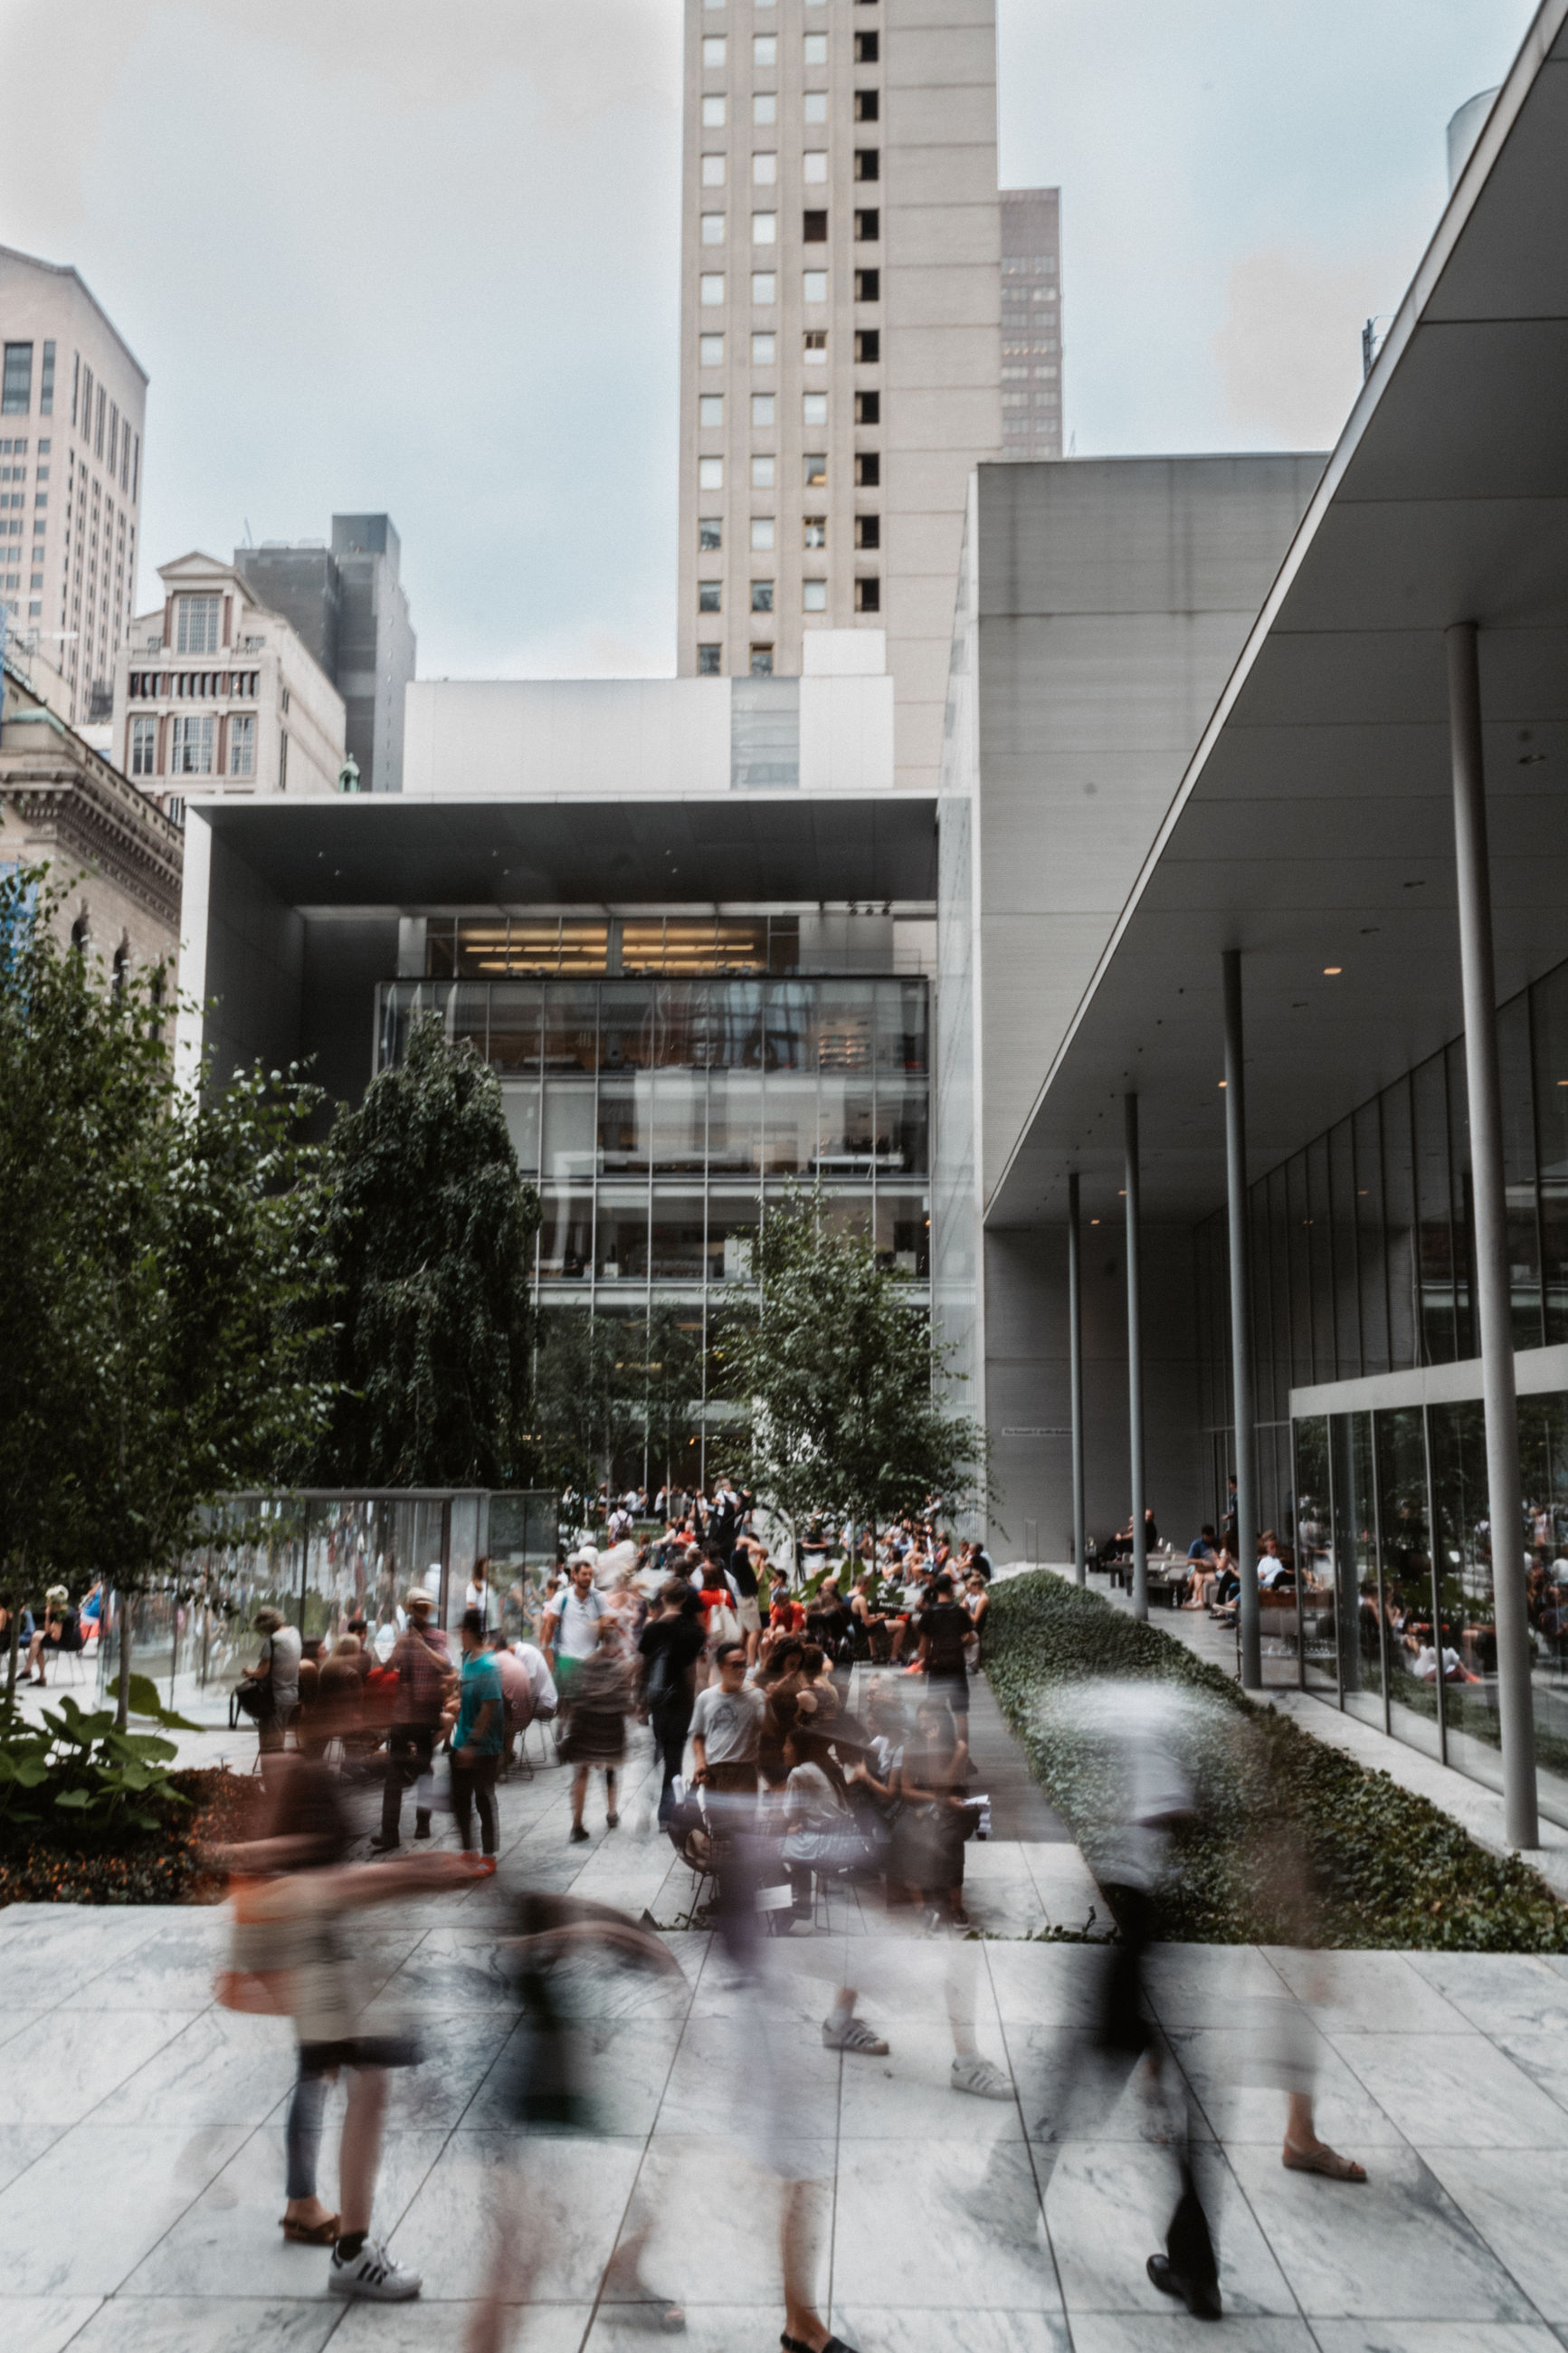 architecture, building exterior, built structure, blurred motion, city, group of people, crowd, motion, building, large group of people, real people, city life, outdoors, walking, men, street, transportation, nature, day, office building exterior, busy